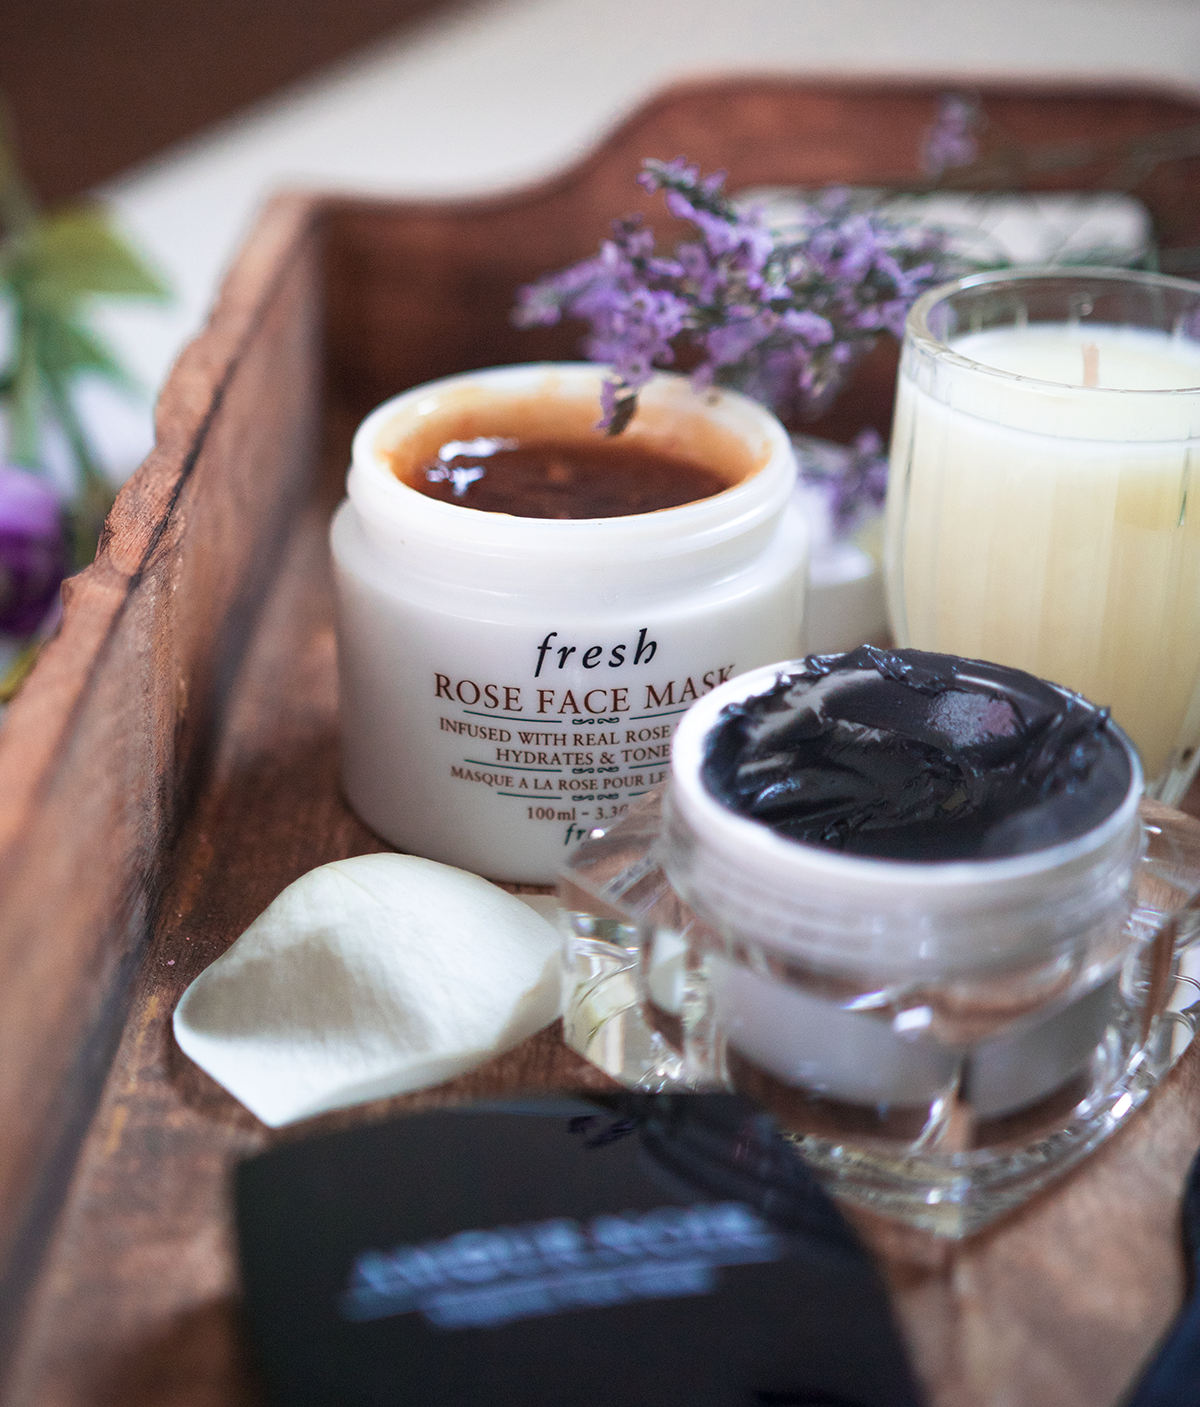 face mask top five favourites fresh rose amour noir magnetic mask masque bar gold foil mask lush cup o' coffee mask scrub